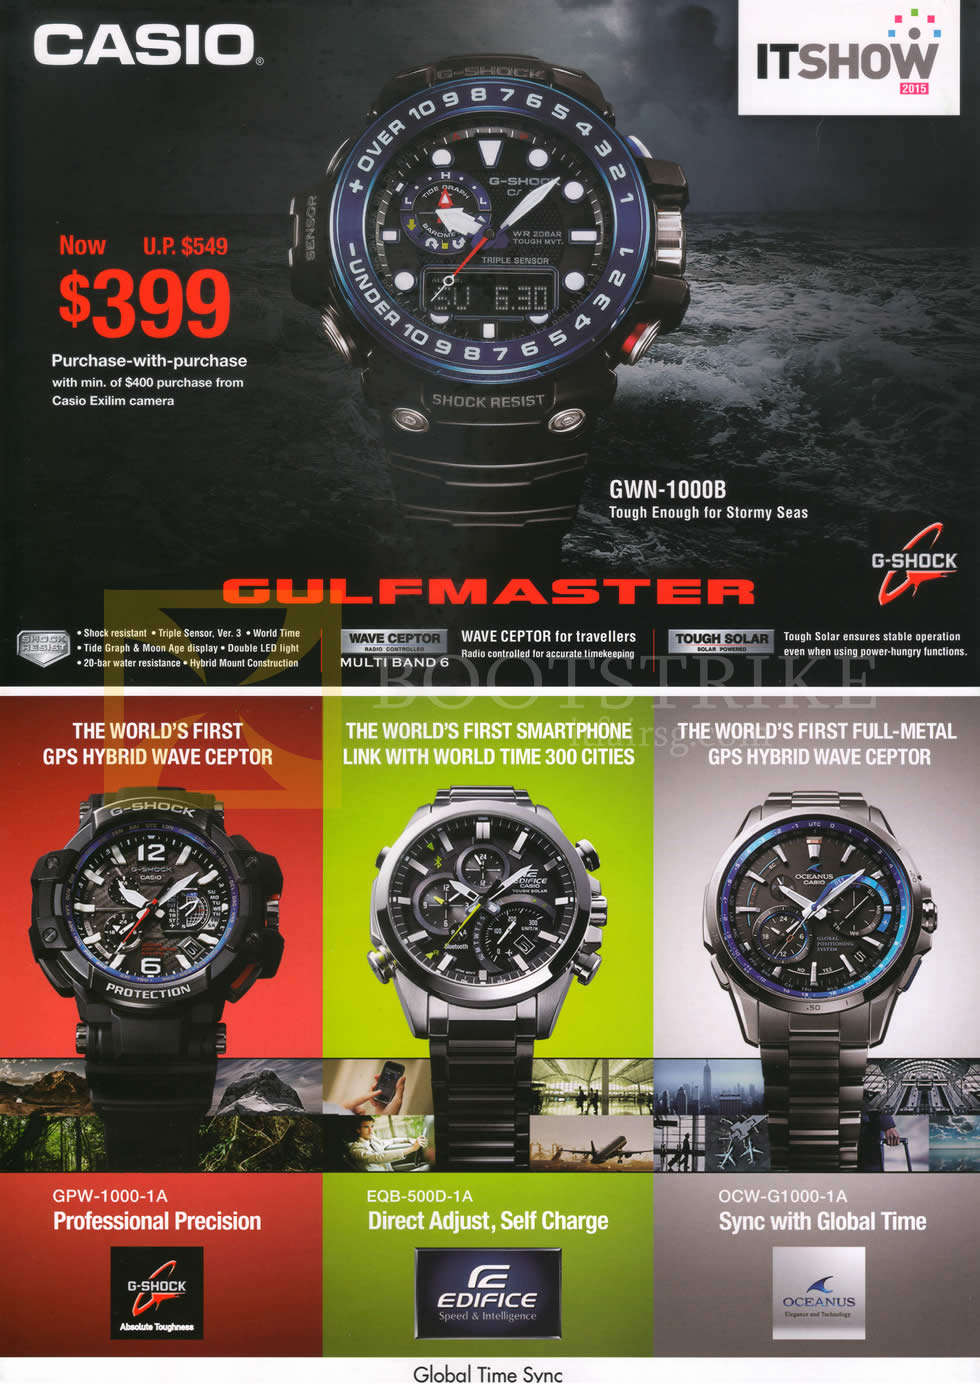 IT SHOW 2015 price list image brochure of Casio Watches G-Shock Gulfmaster GWN-1000B, GPW-1000-1A, EQB-500D-1A, OCW-G1000-1A